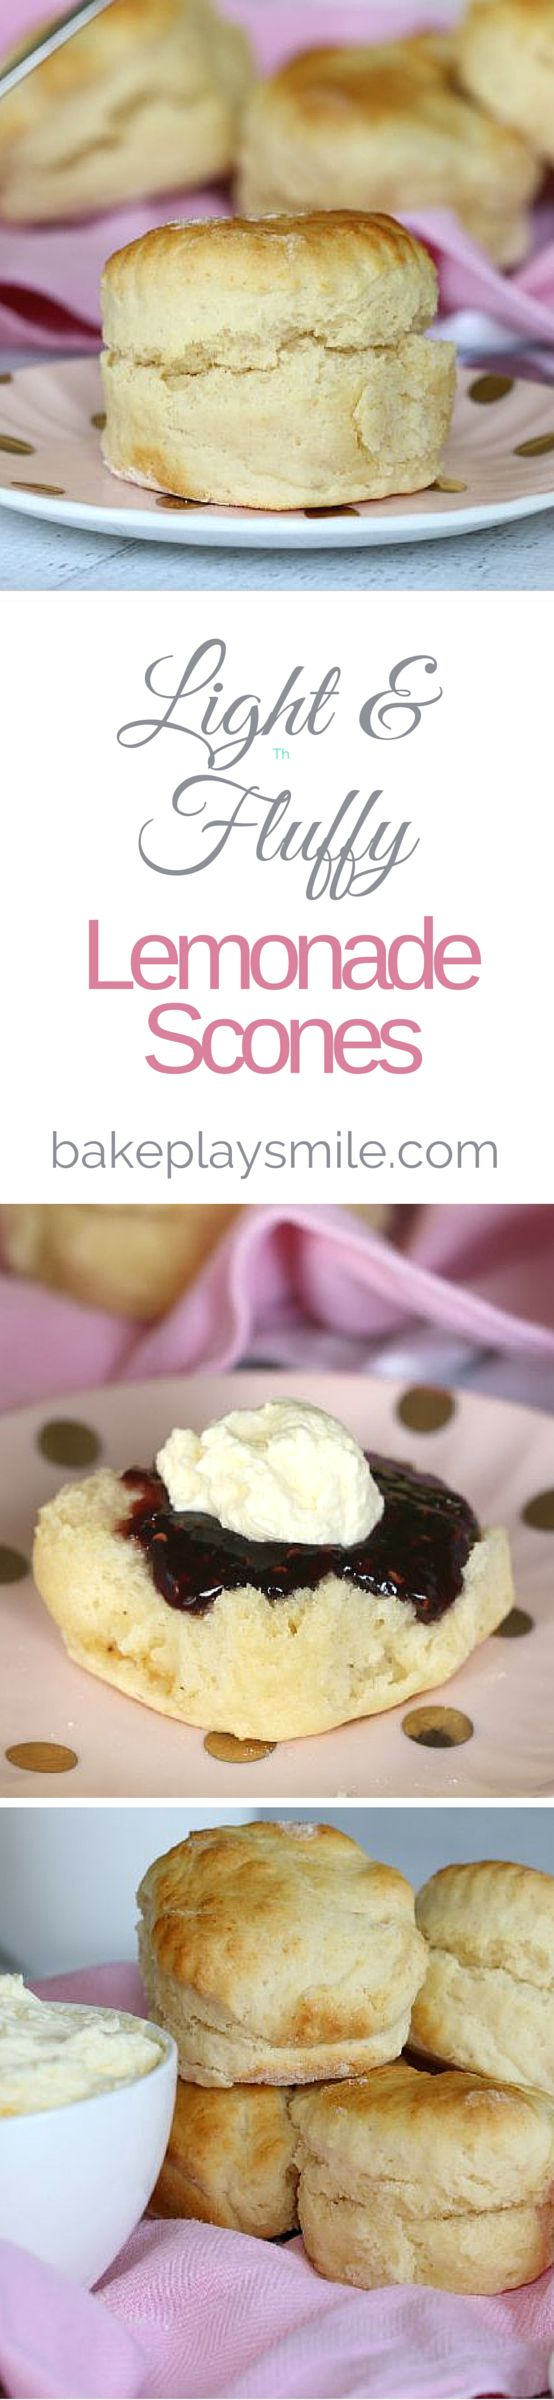 The most perfect Thermomix (and fool-proof) scones you'll ever make! The lemonade keeps them light and fluffy... best of all, they'll be ready in no time at all! #lemonade #scones #easy #recipe #nofail #thermomix